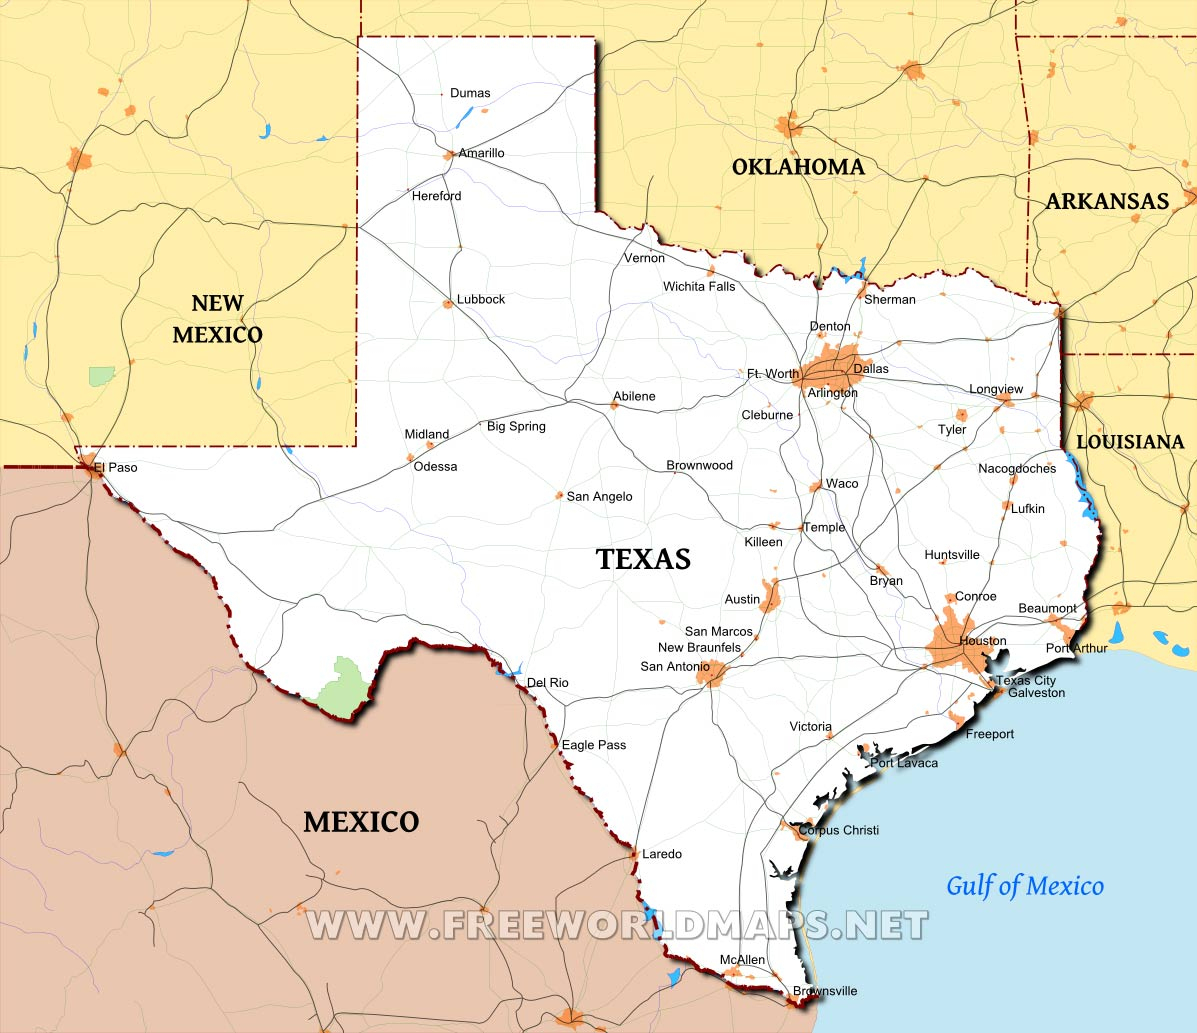 Texas Maps - Big Spring Texas Map